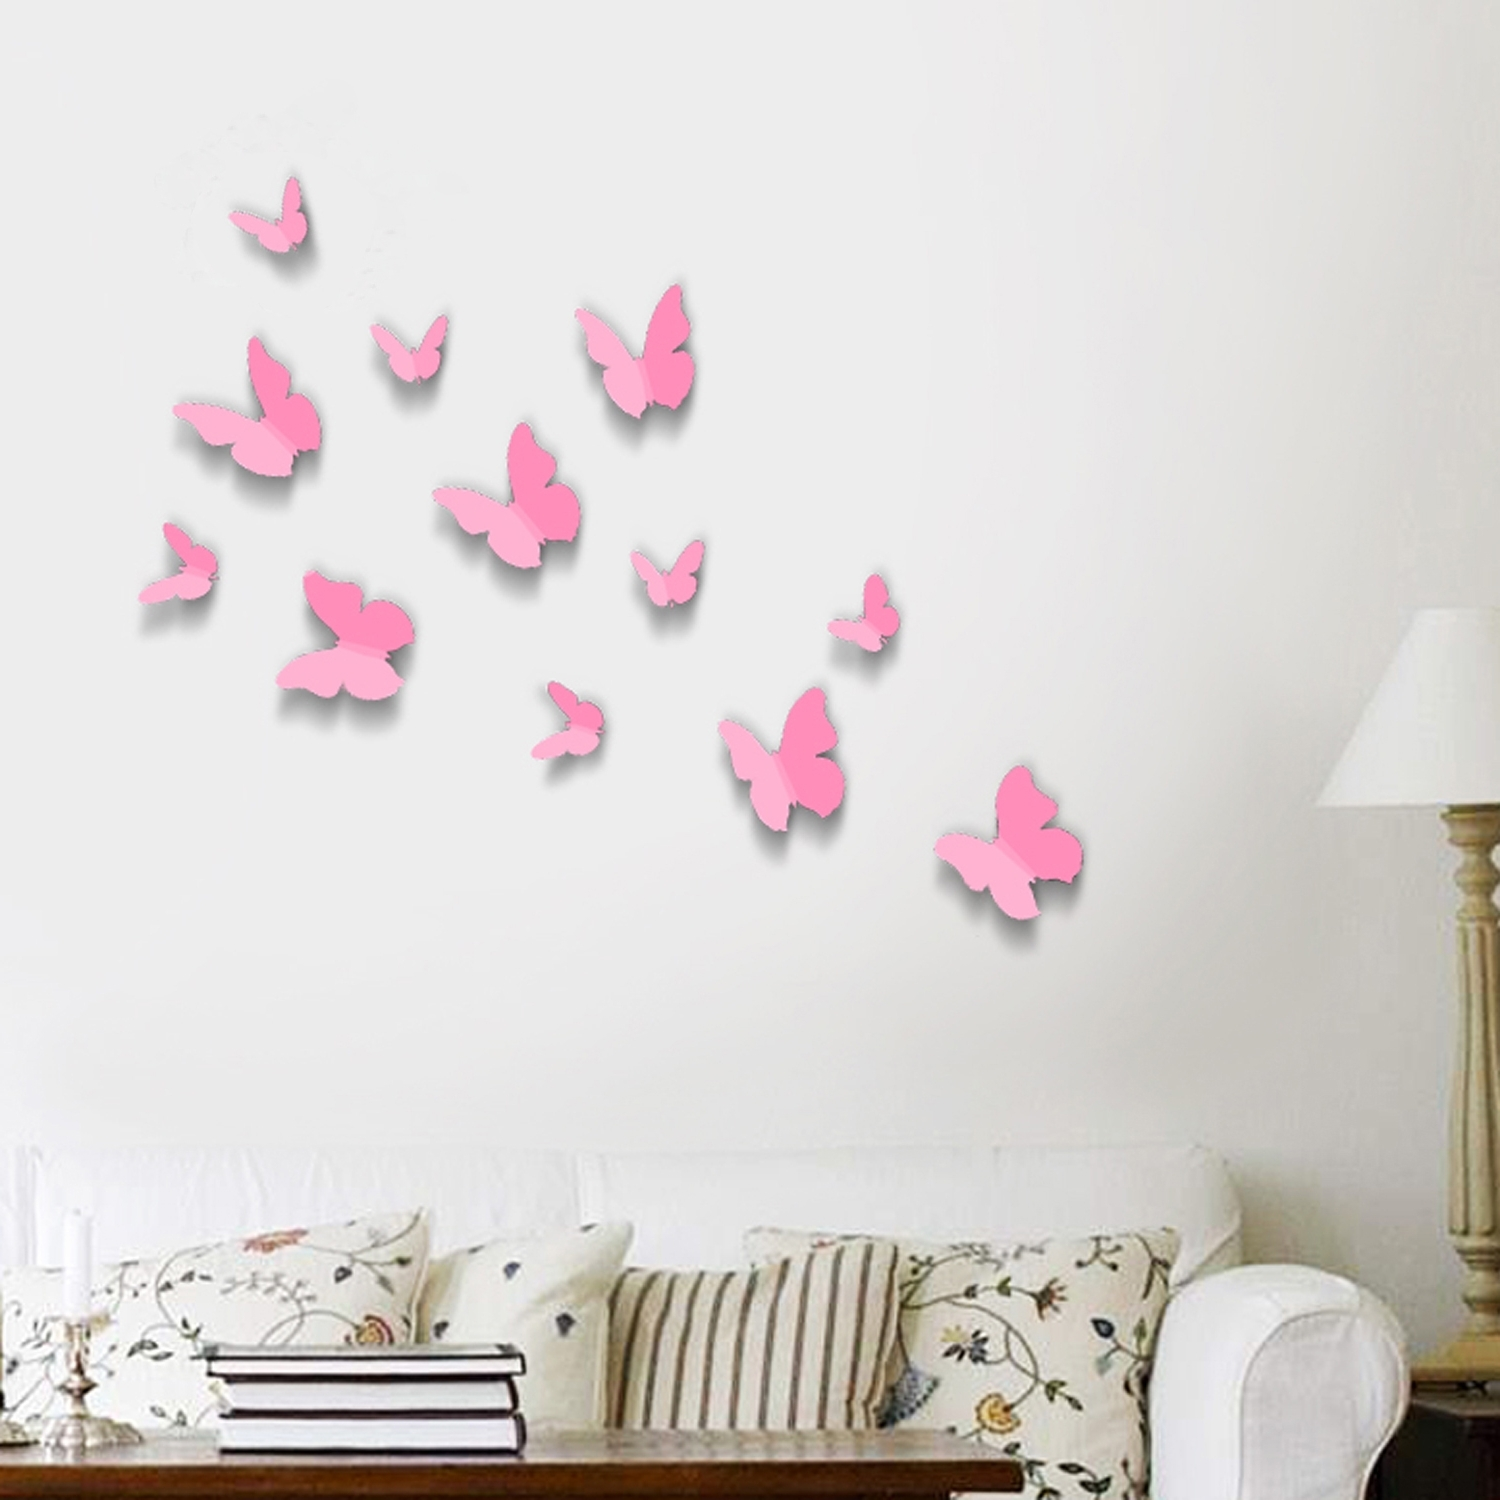 Pink 3D Butterflies Wall Art Stickers With Regard To Best And Newest Pink Butterfly Wall Art (View 11 of 15)